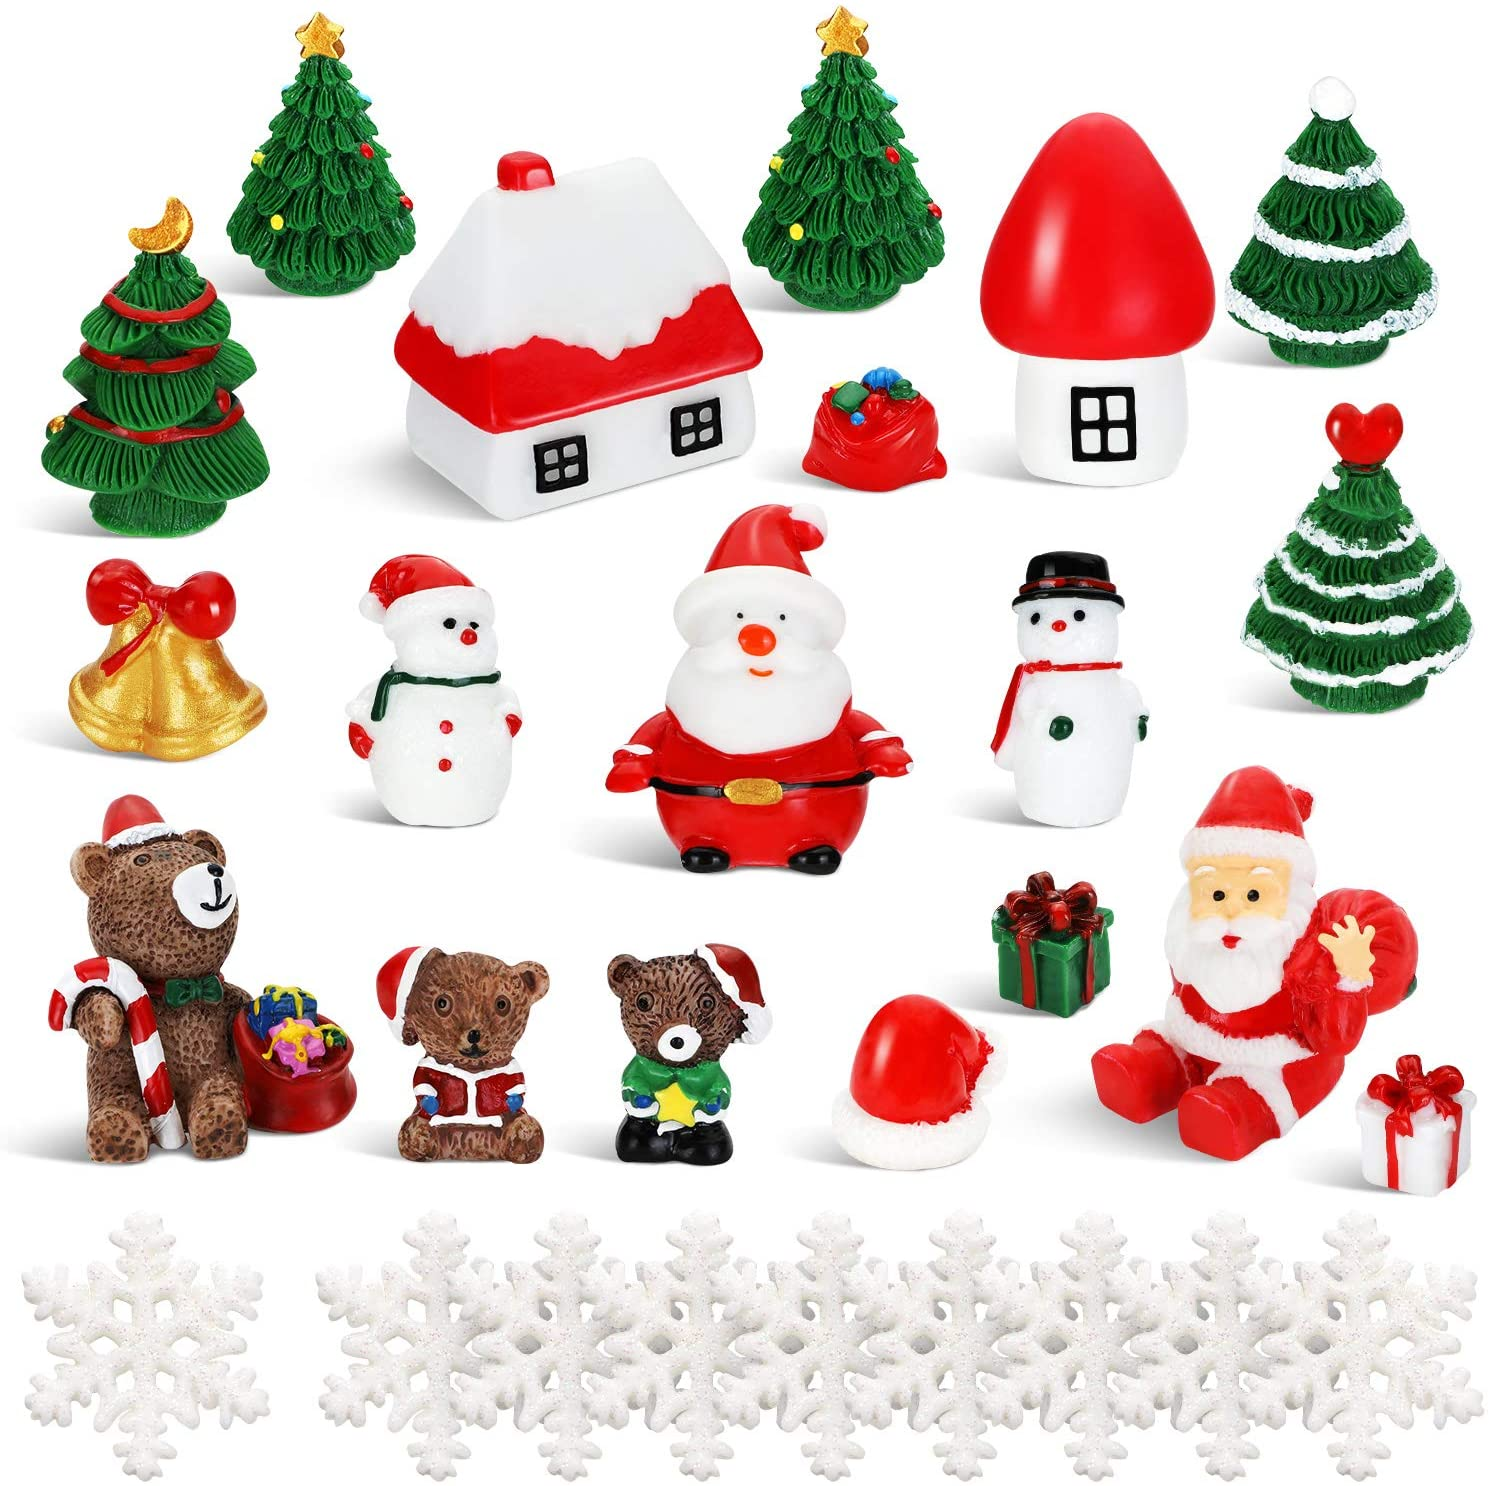 43 Pieces Christmas Miniature Ornaments Christmas Tree Snowman Small Bell Bear Hut Castle Snowflake Mini Ornaments for Christmas Party Decorations